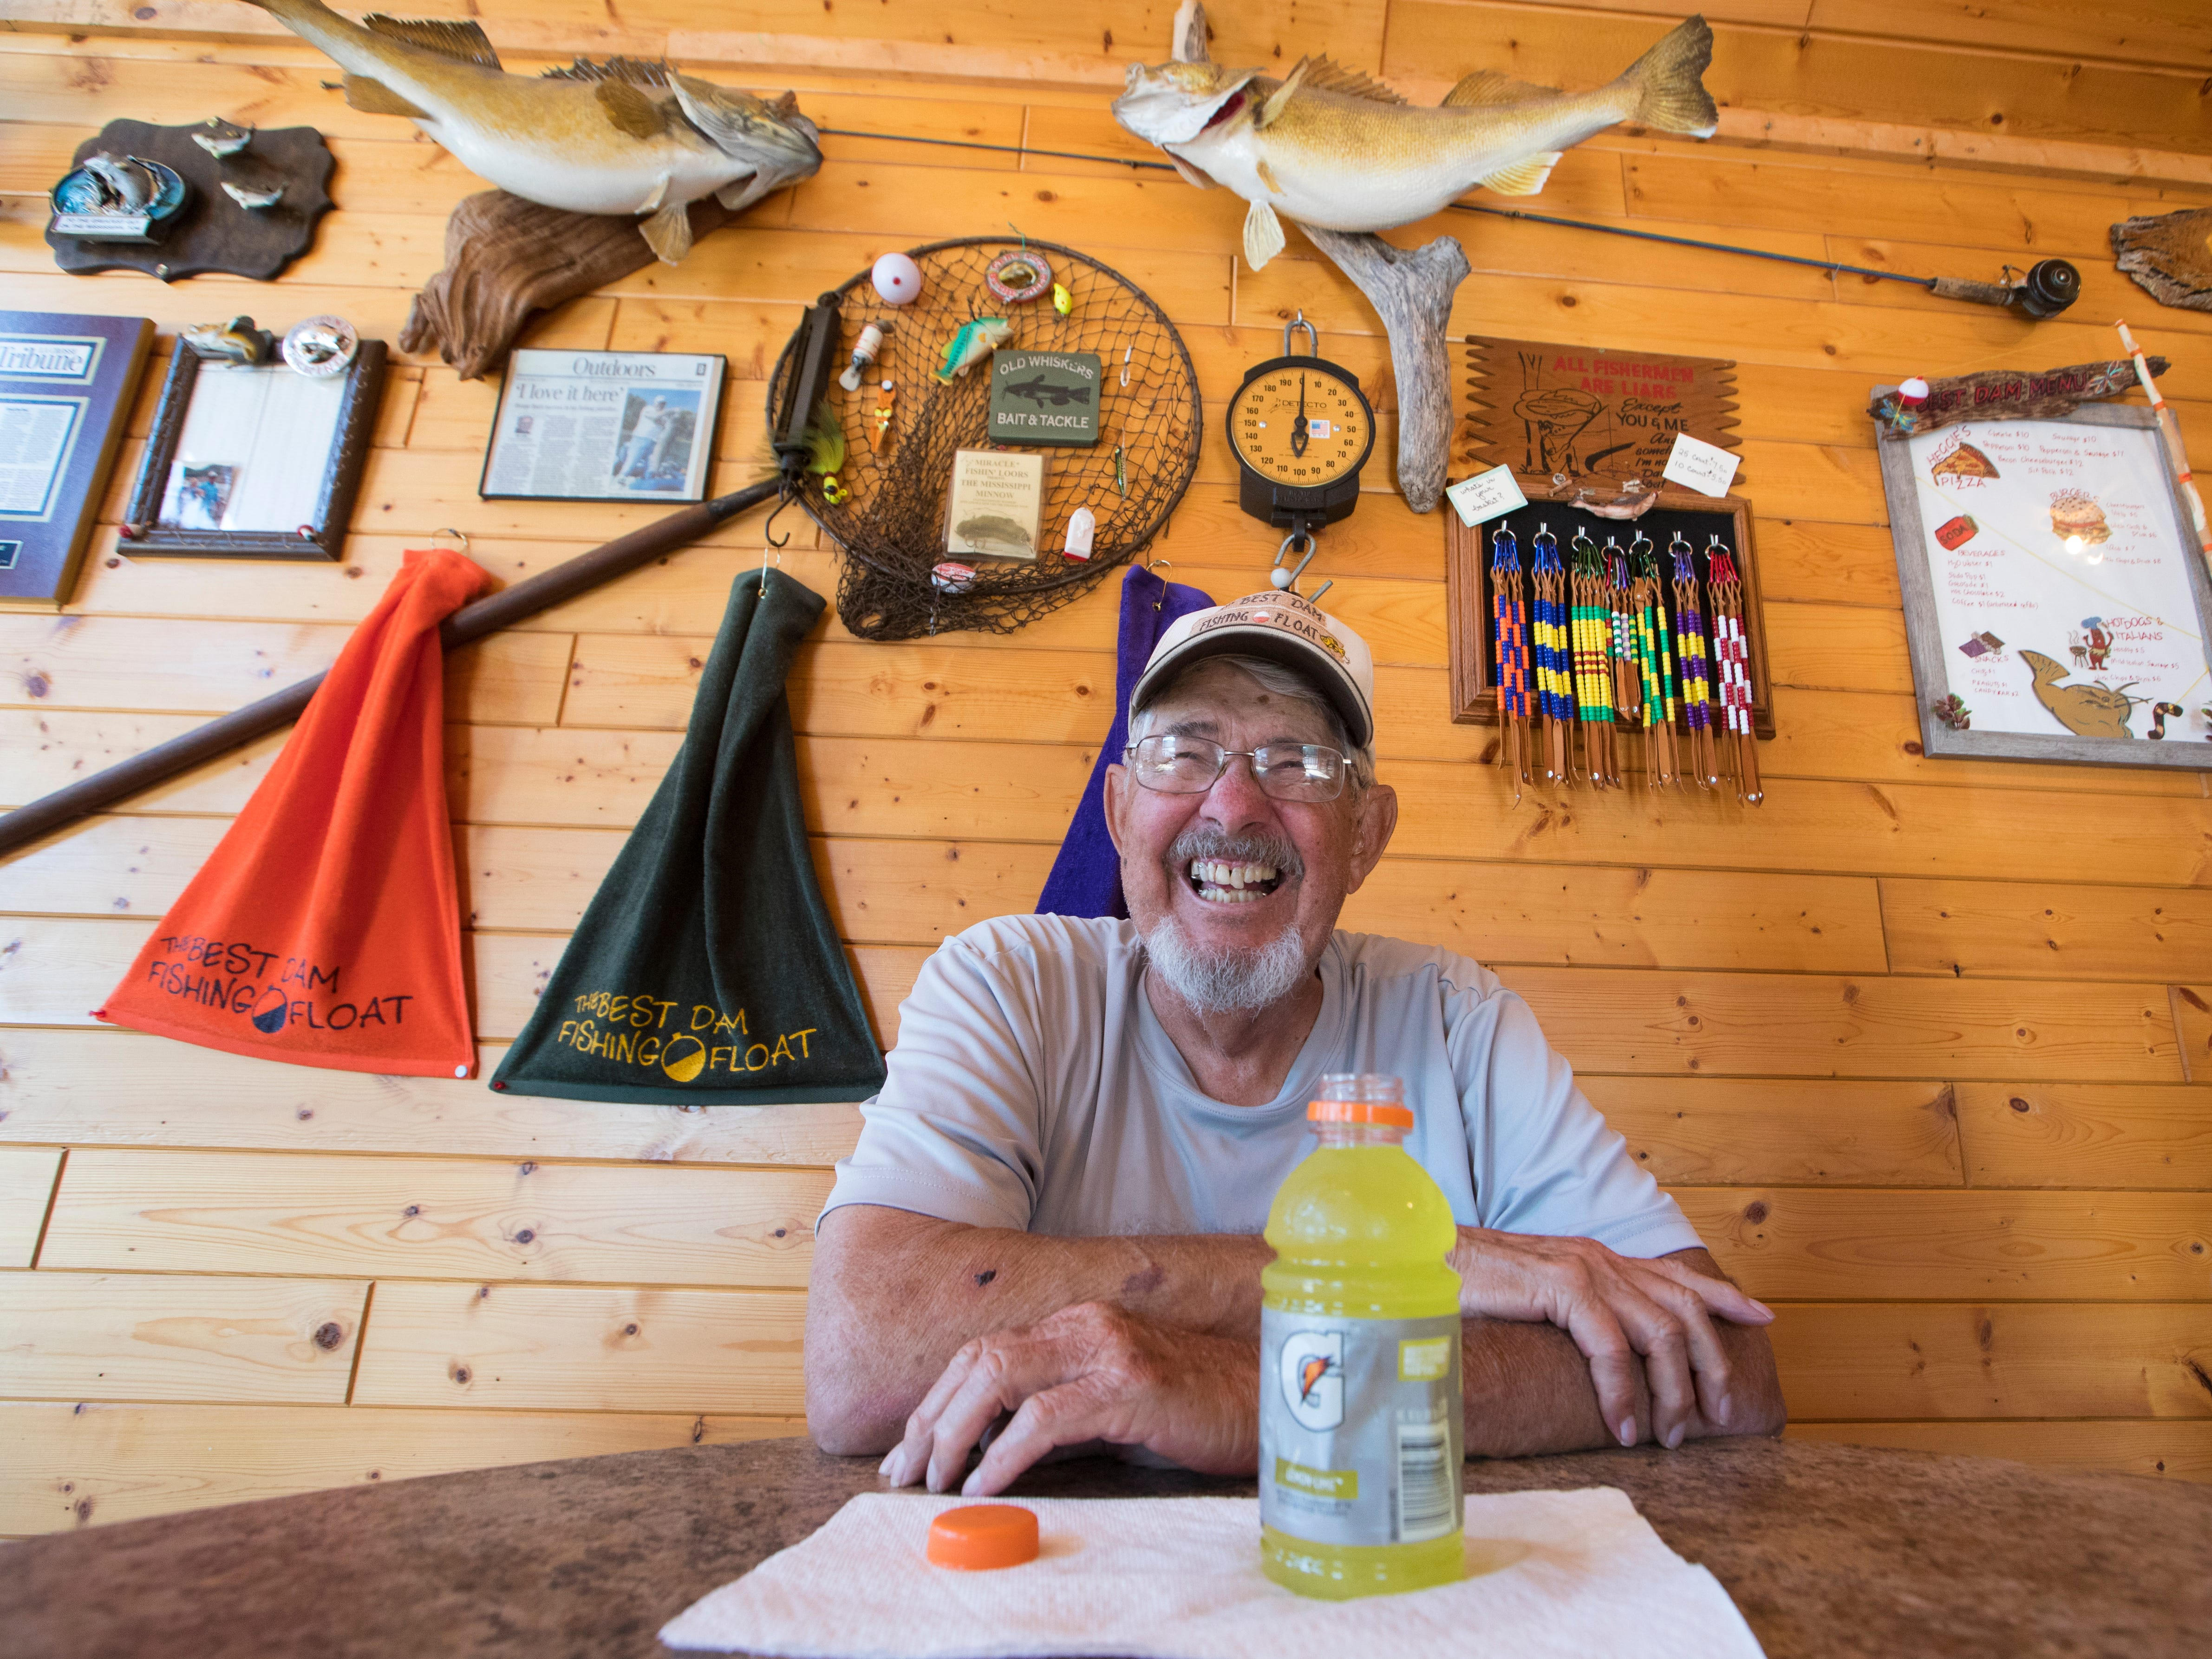 Elwyn Bean takes a break from fishing Sunday on the Best Dam Fishing Float on the Mississippi River in La Crosse. The floating dock, located on the. Wisconsin side, caters to anglers who want to fish a hot spot below Lock & Dam No. 7. Anglers wanting to patronize the dock flip a sign on a boat landing on the Minnesota side of the river signaling someone to pick them up by boat.